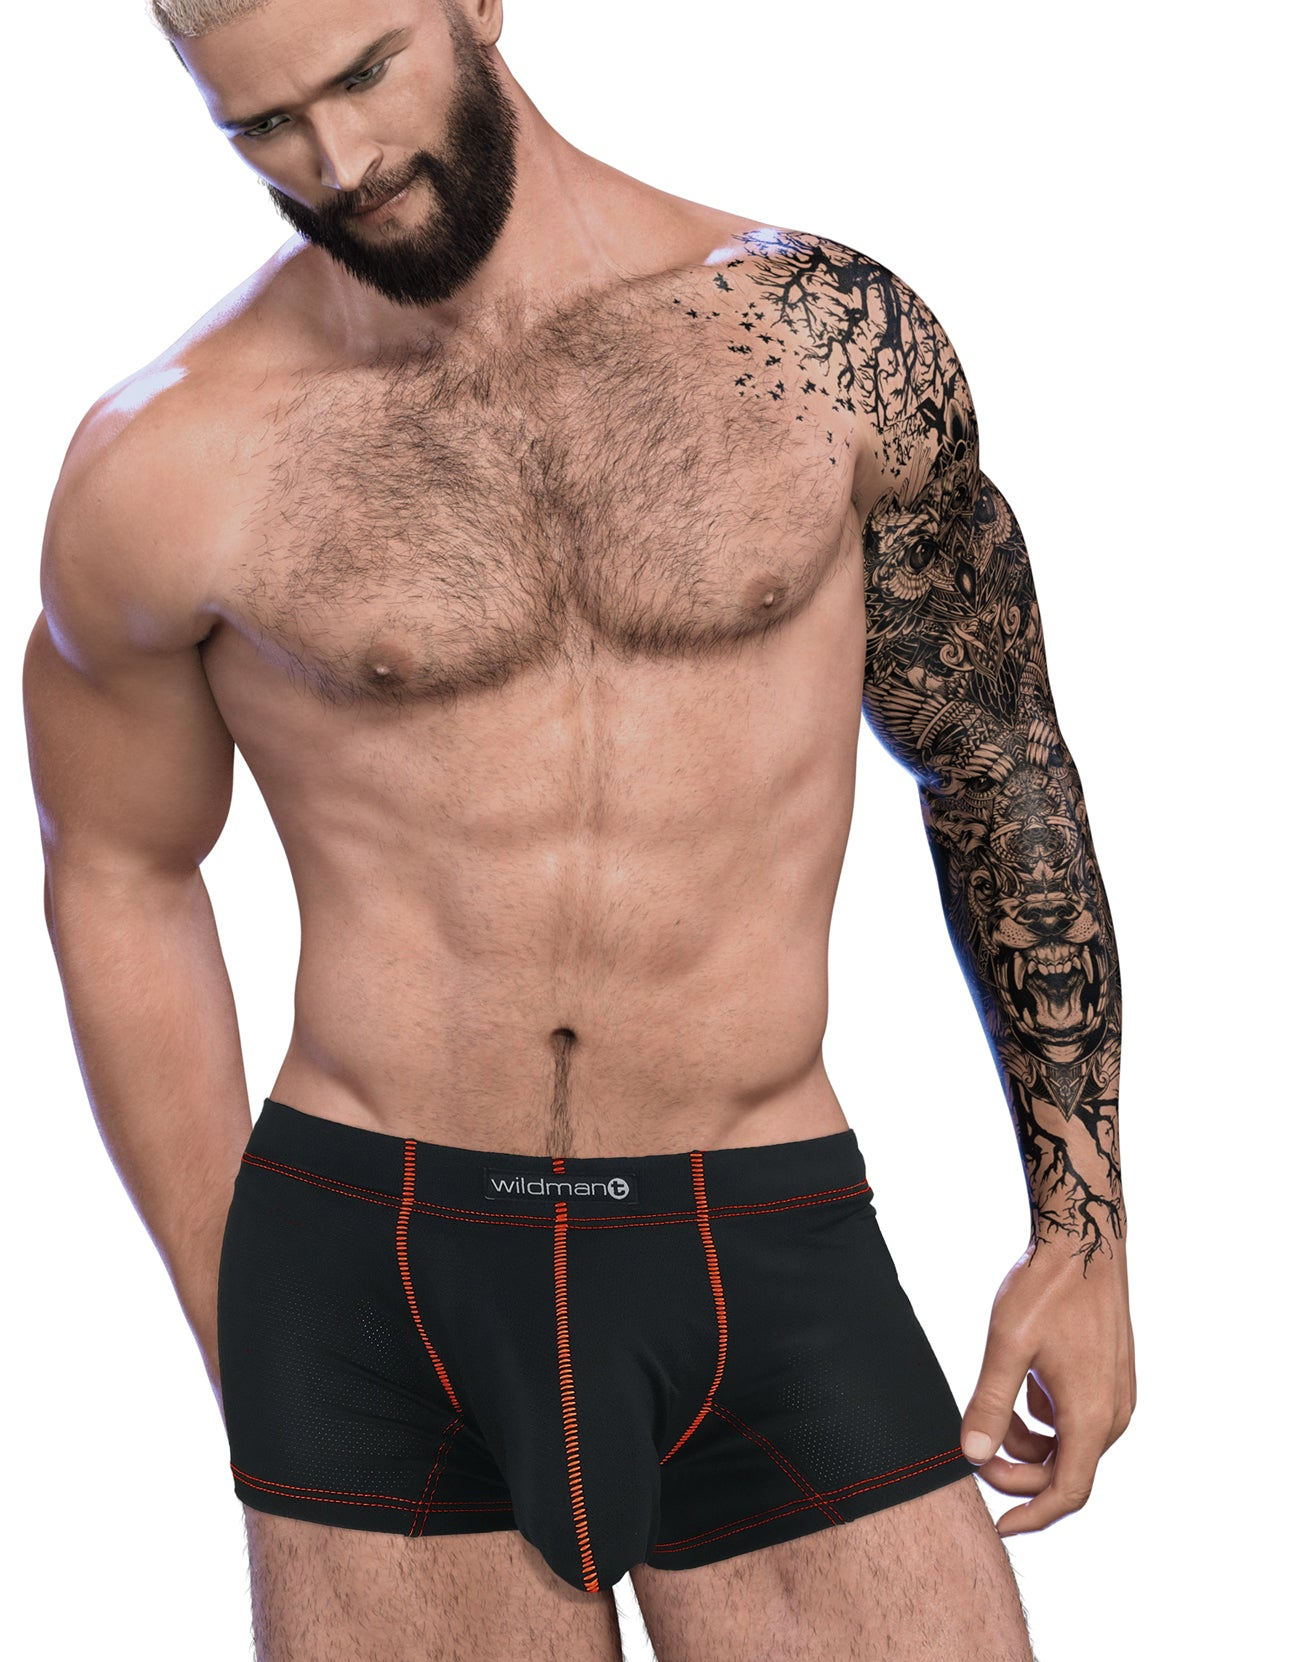 Stitch Big Boy Pouch Boxer Brief - Red - Big Penis Underwear, WildmanT - WildmanT